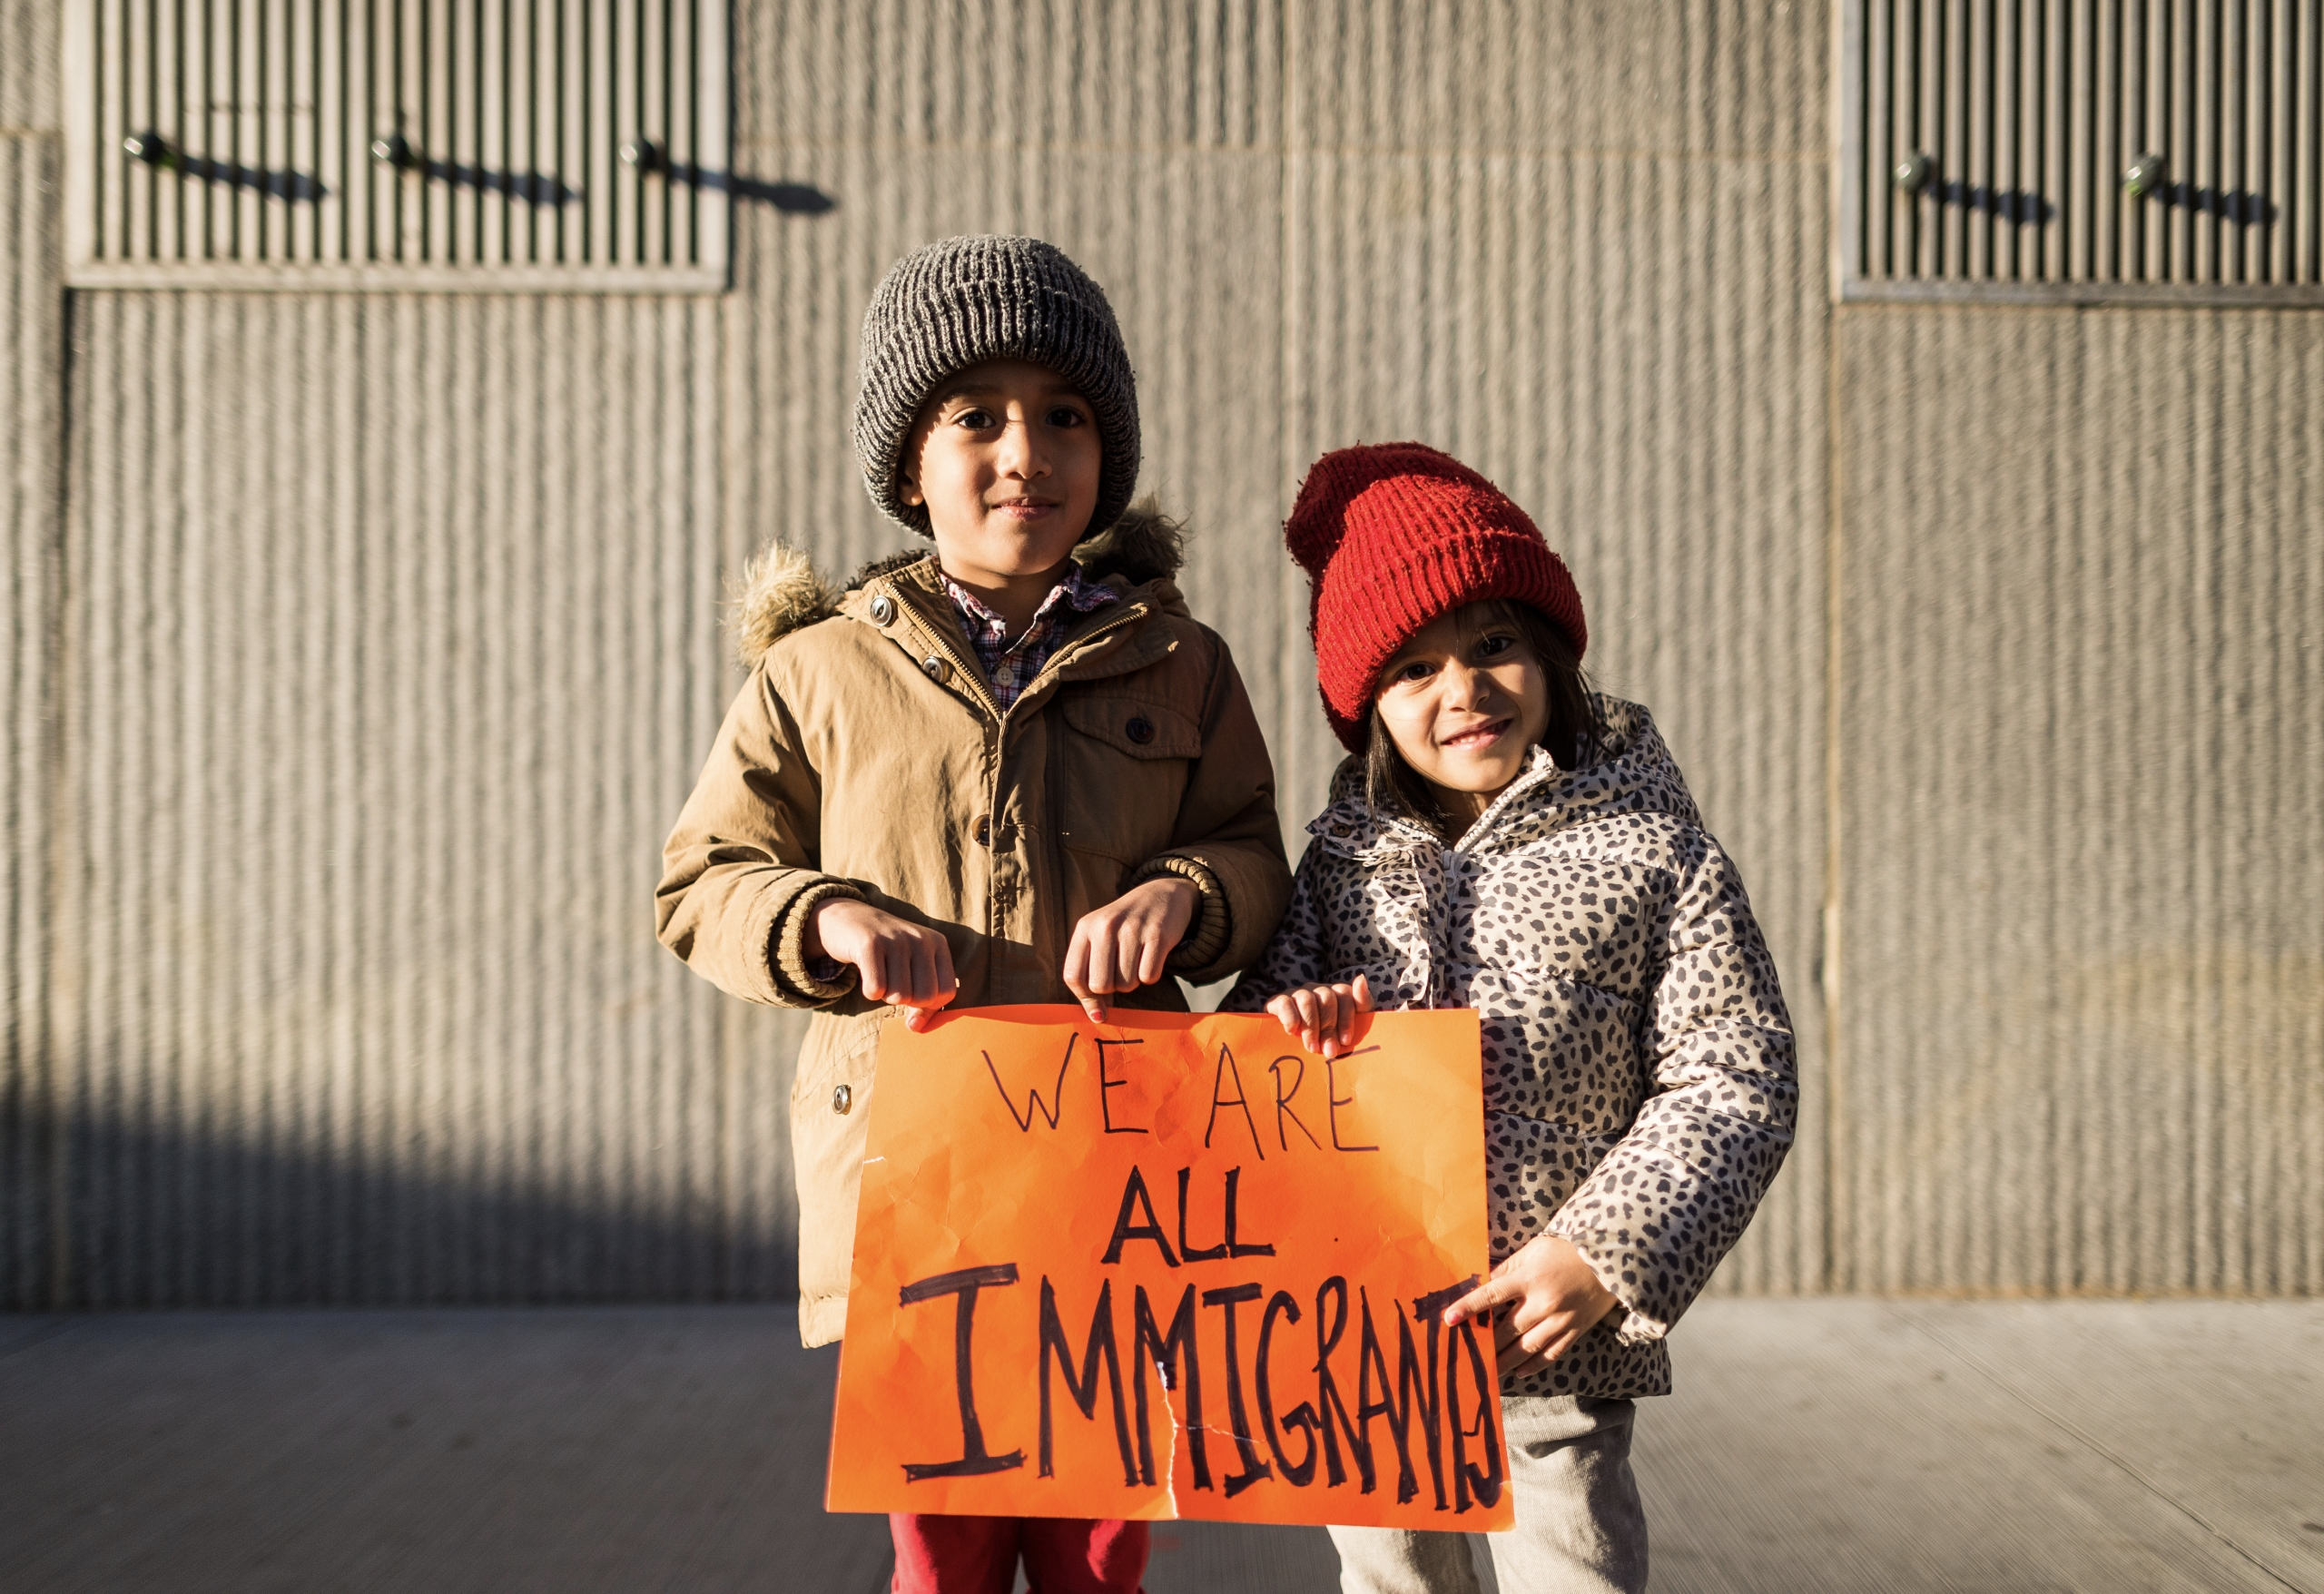 Immigrants - Children Battery P - danielkrieger | ello